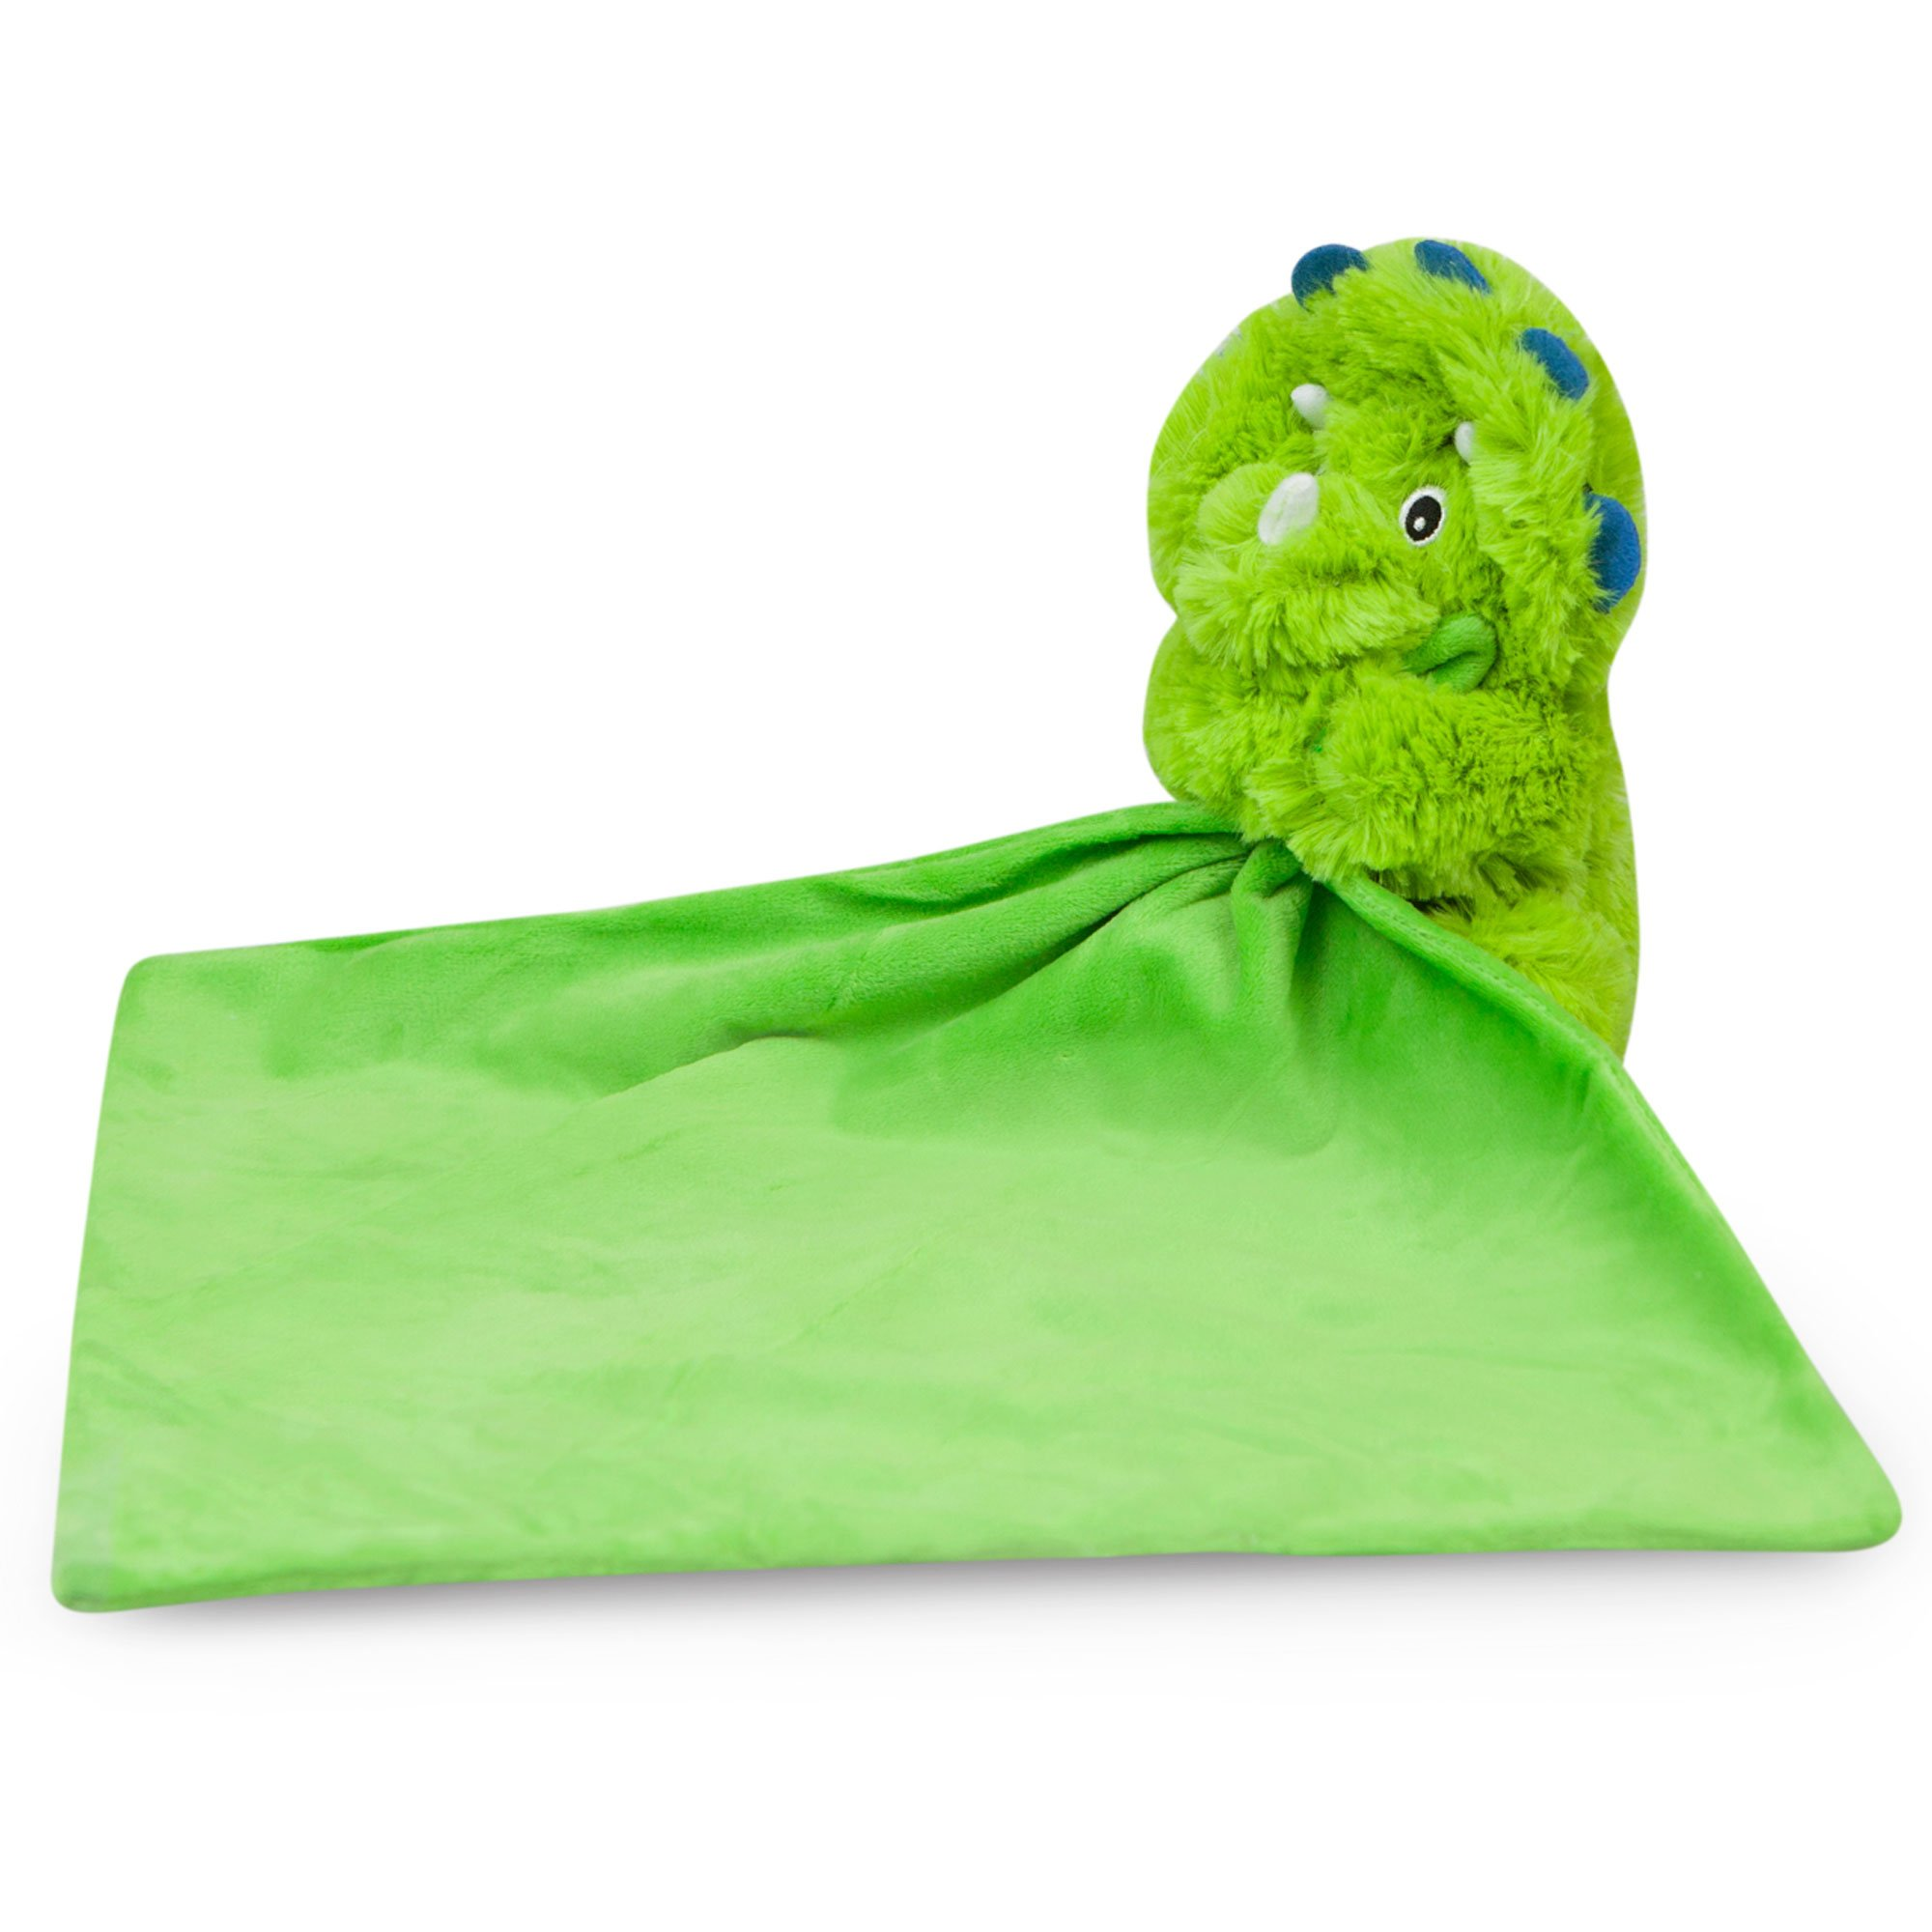 Waddle Rattle Dinosaur Toy Baby Blankie Stuffed Animal Security Blanket Dino Green